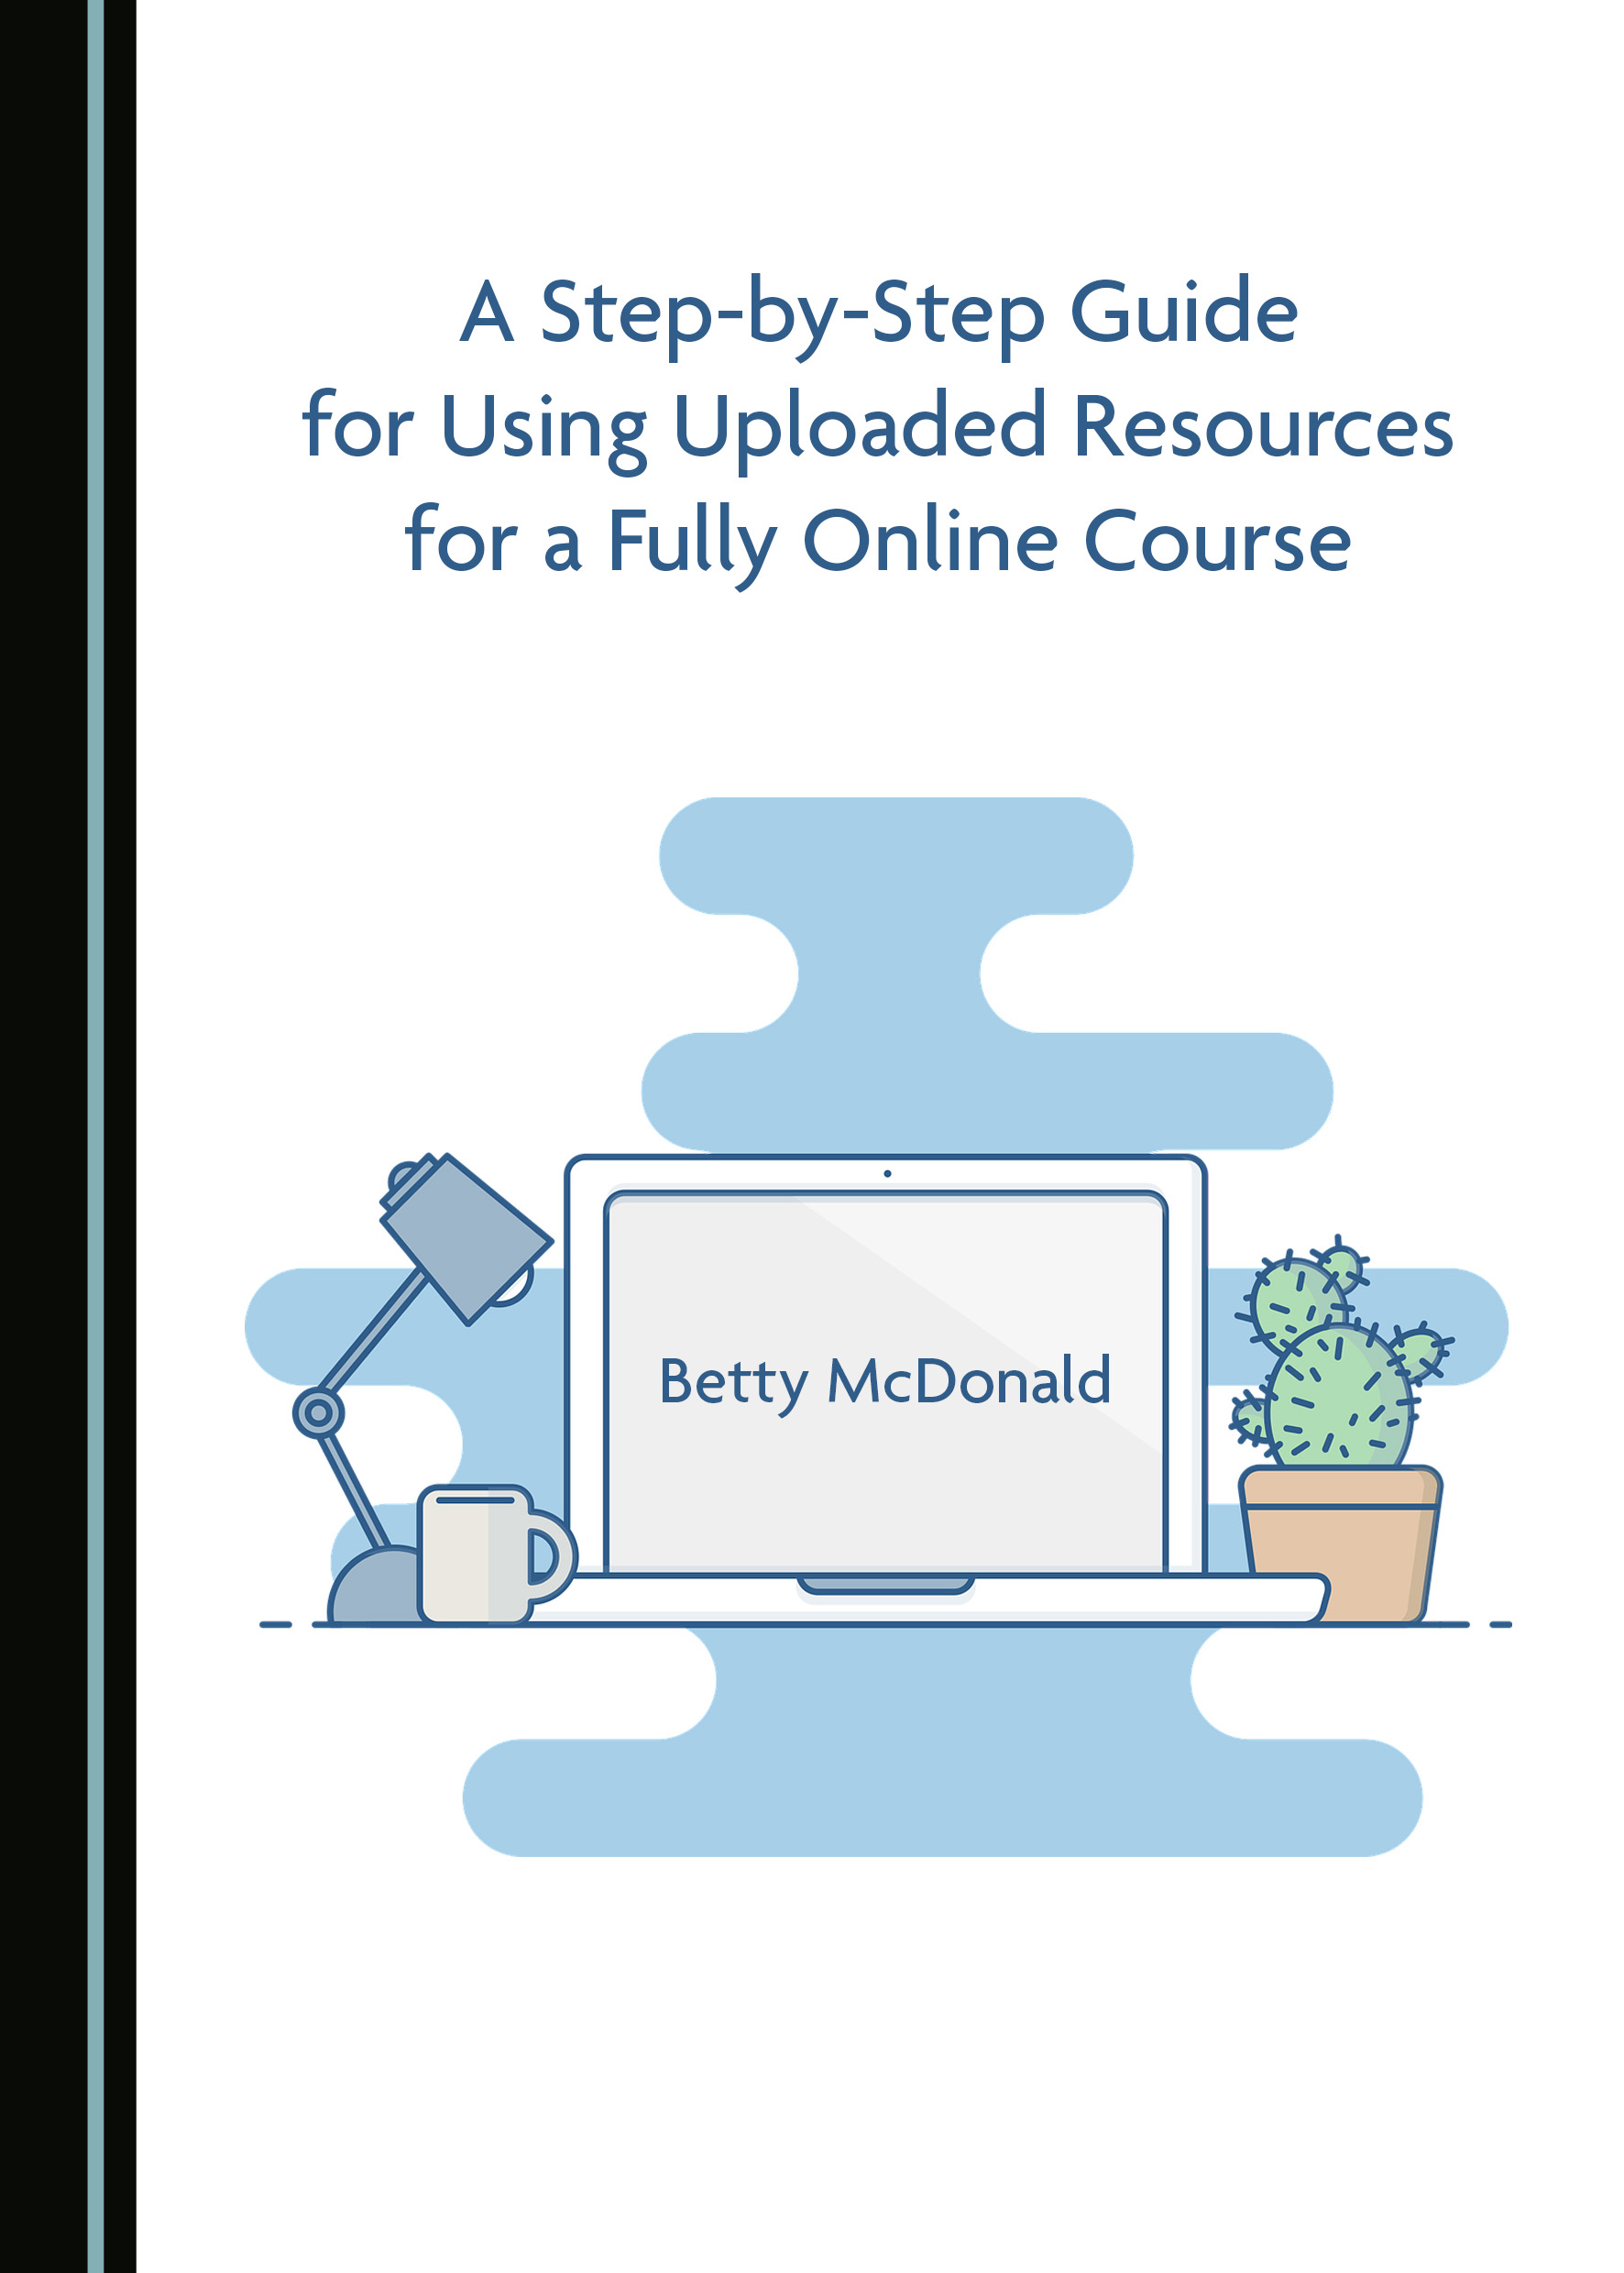 A Step-by-Step Guide for Using Uploaded Resources for a Fully Online Course